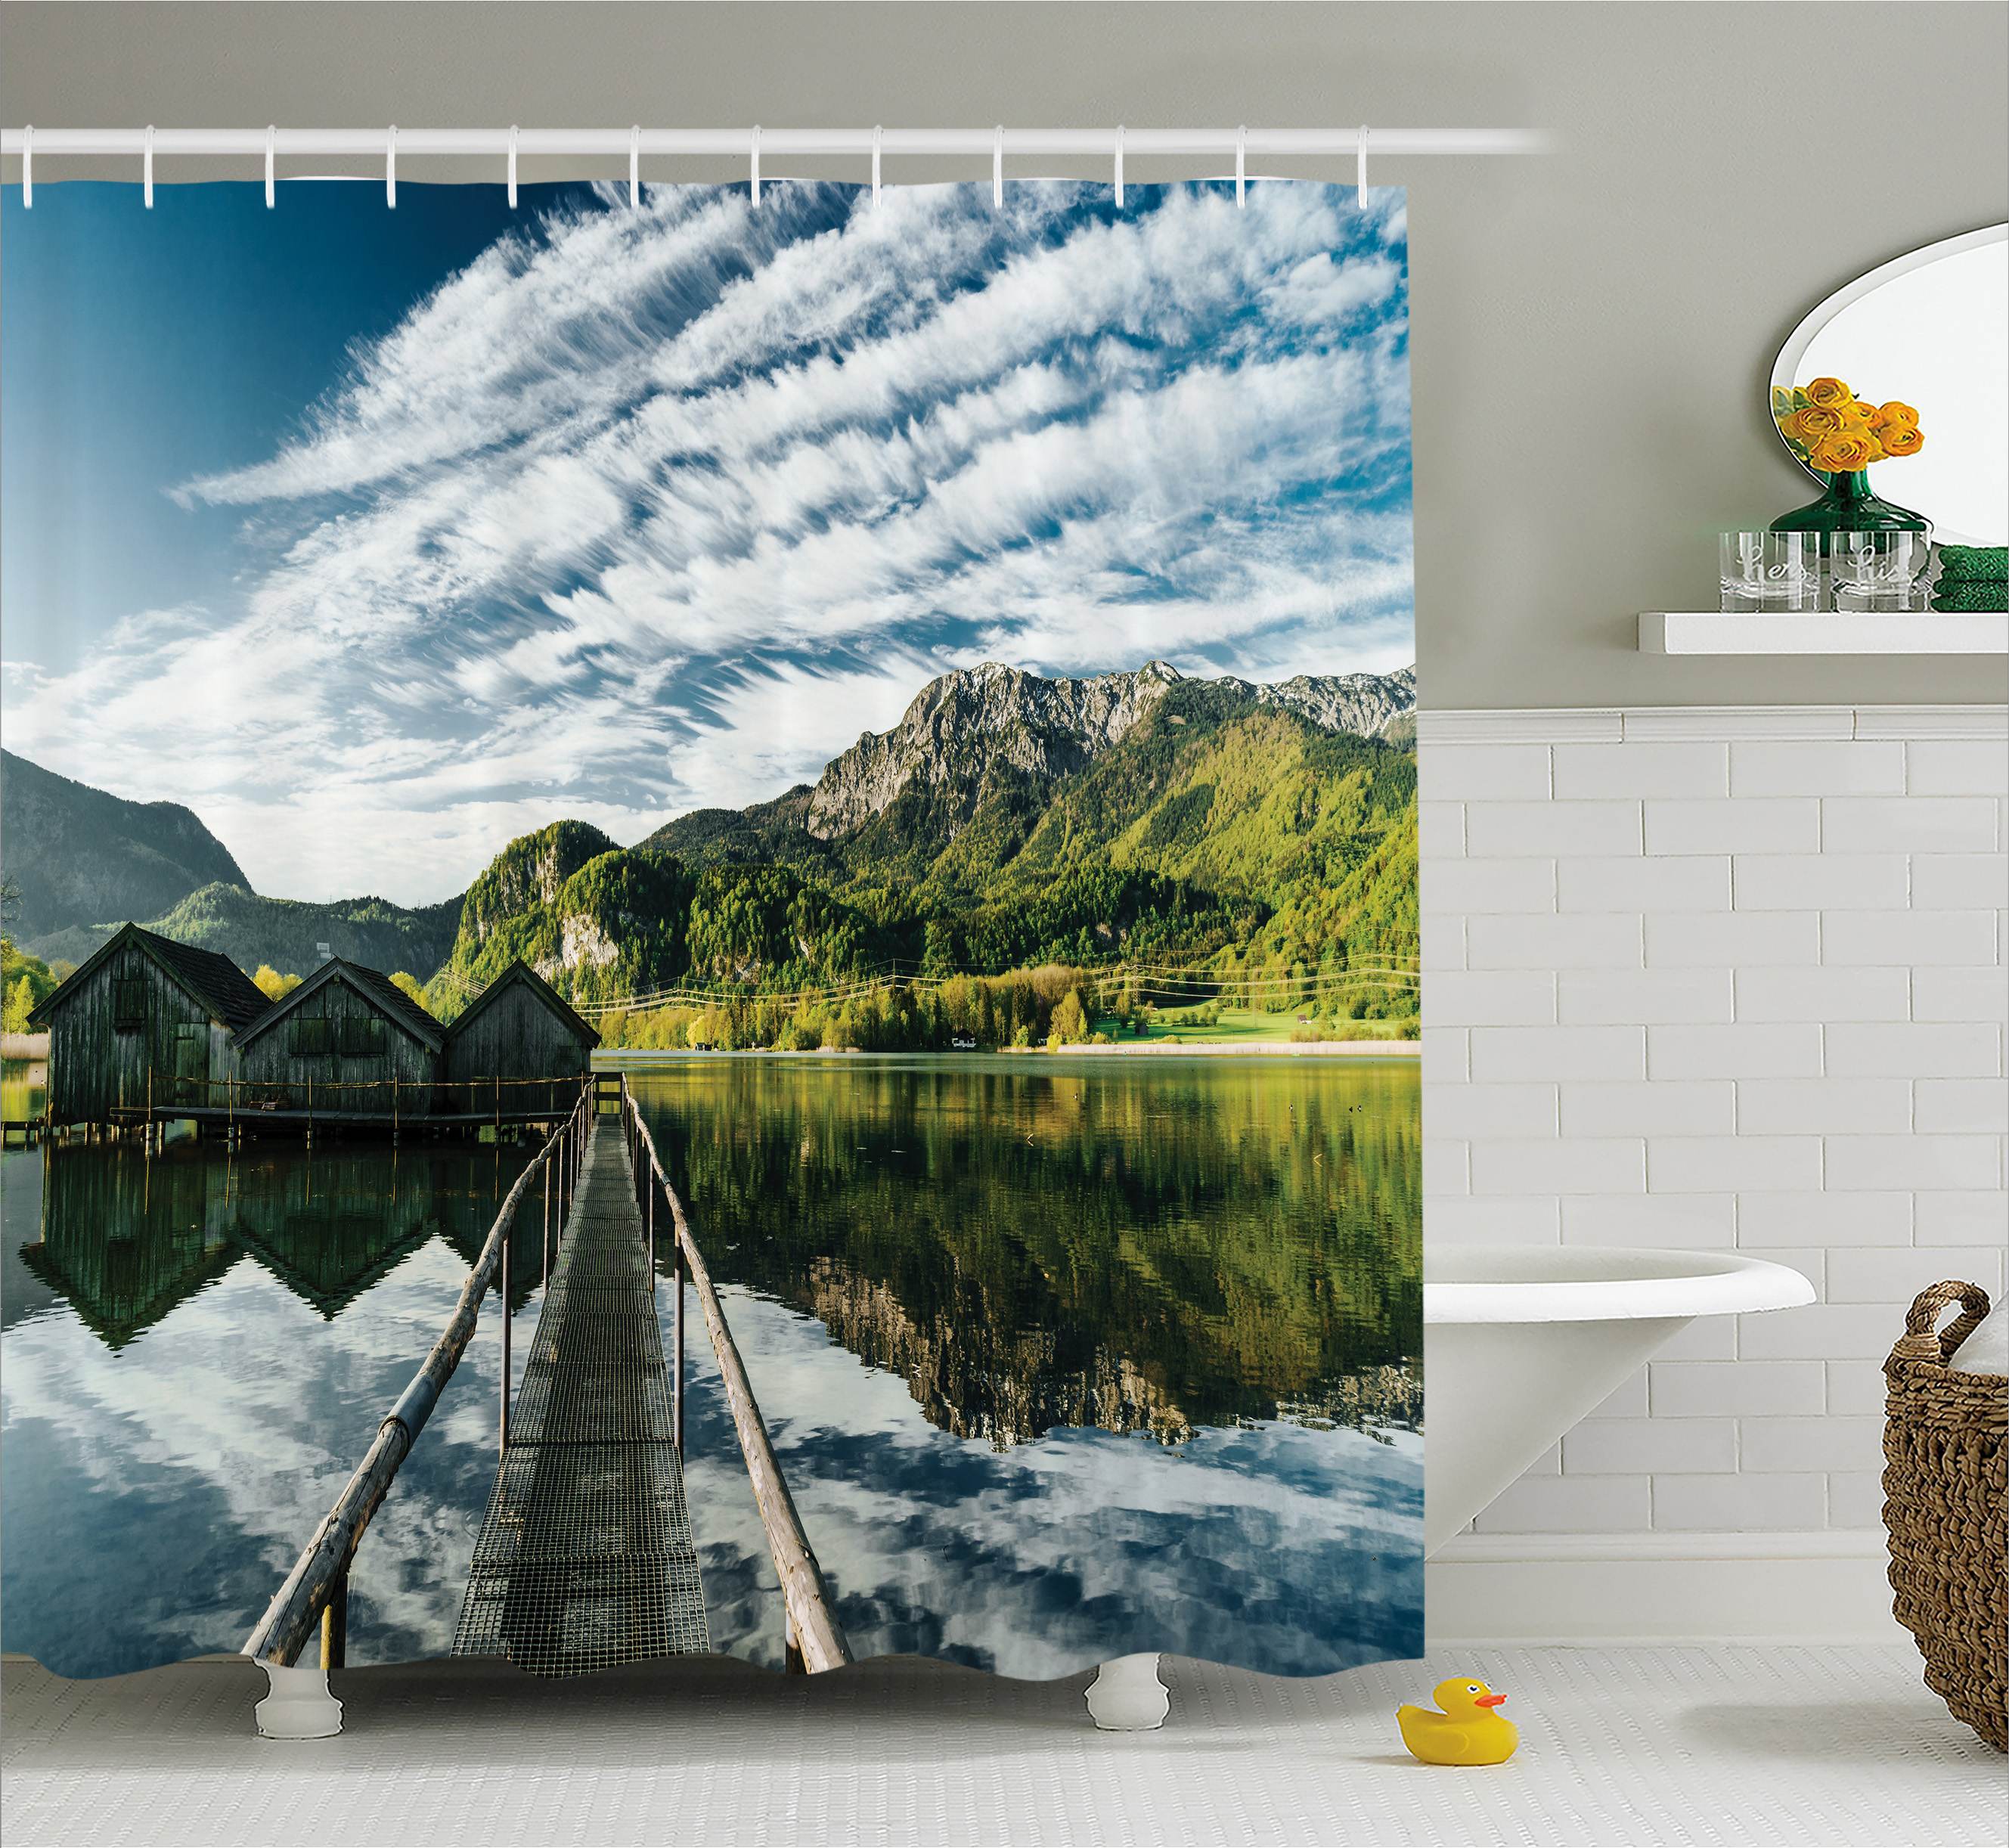 Lake House Decor Shower Curtain, Long Exposure Deck on Idyllic Habitat Mountain River Clouds on Wild Valley, Fabric Bathroom Set with Hooks, 69W X 84L Inches Extra Long, Blue Green, by Ambesonne